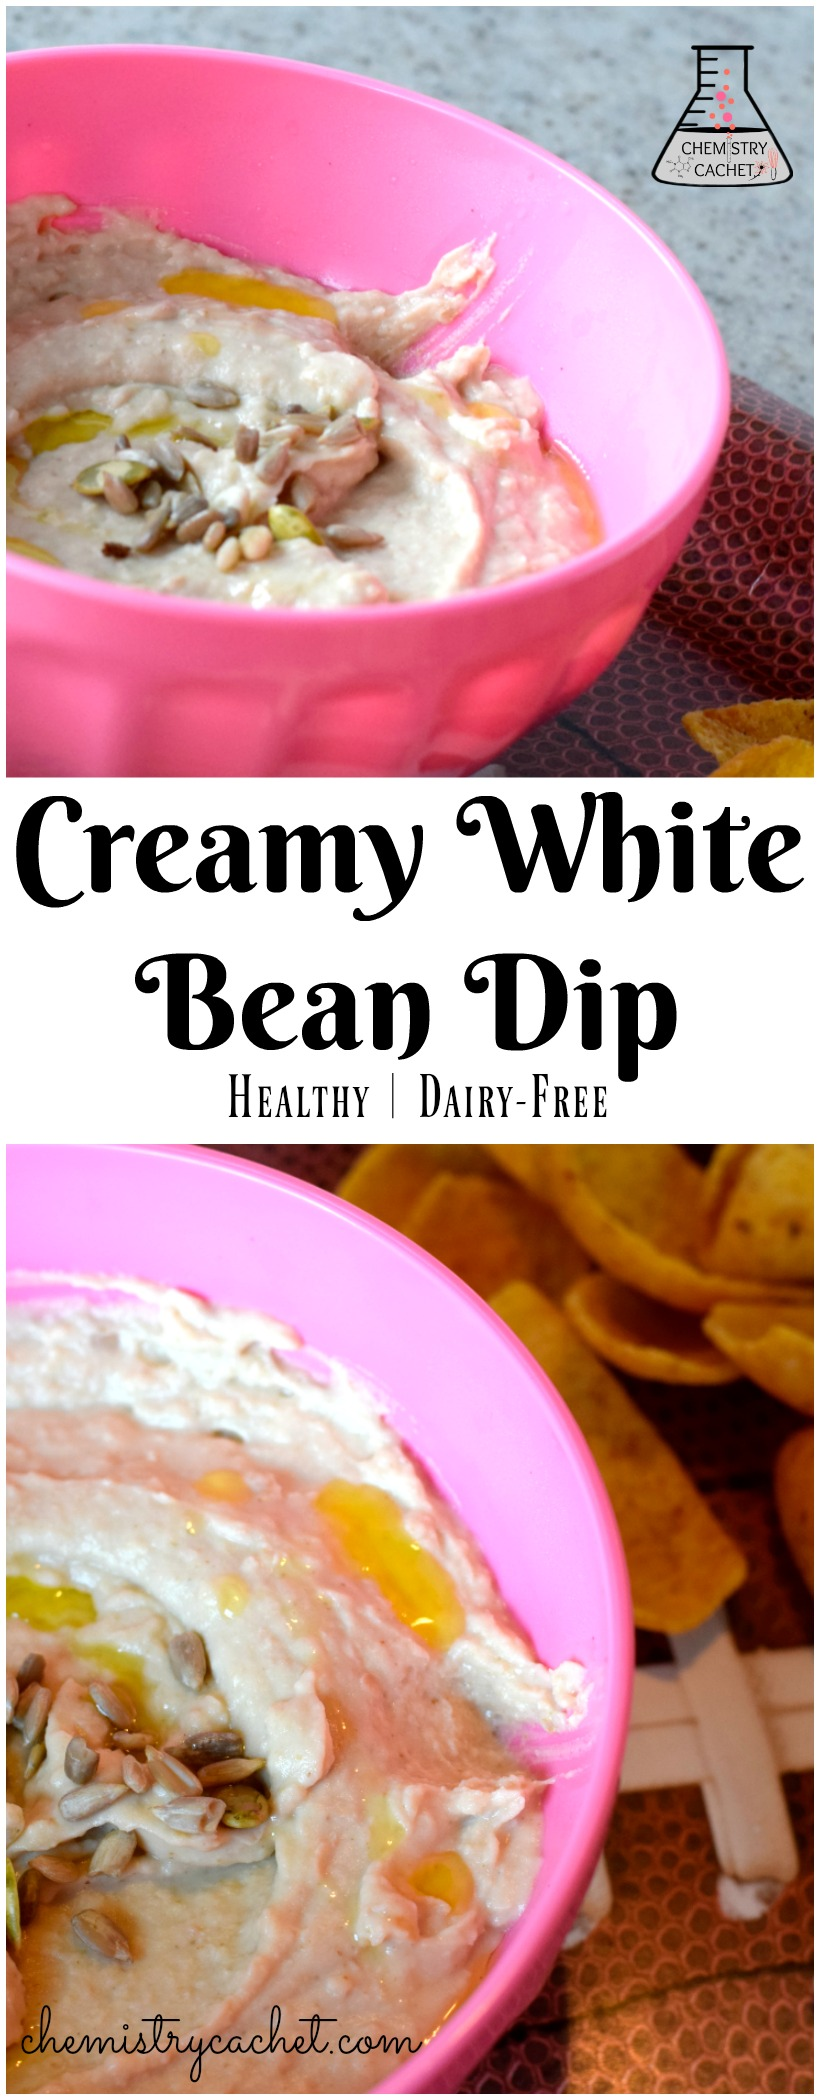 Super creamy healthy white bean dip. Perfect for parties! White bean dip recipe on chemistrycachet.com